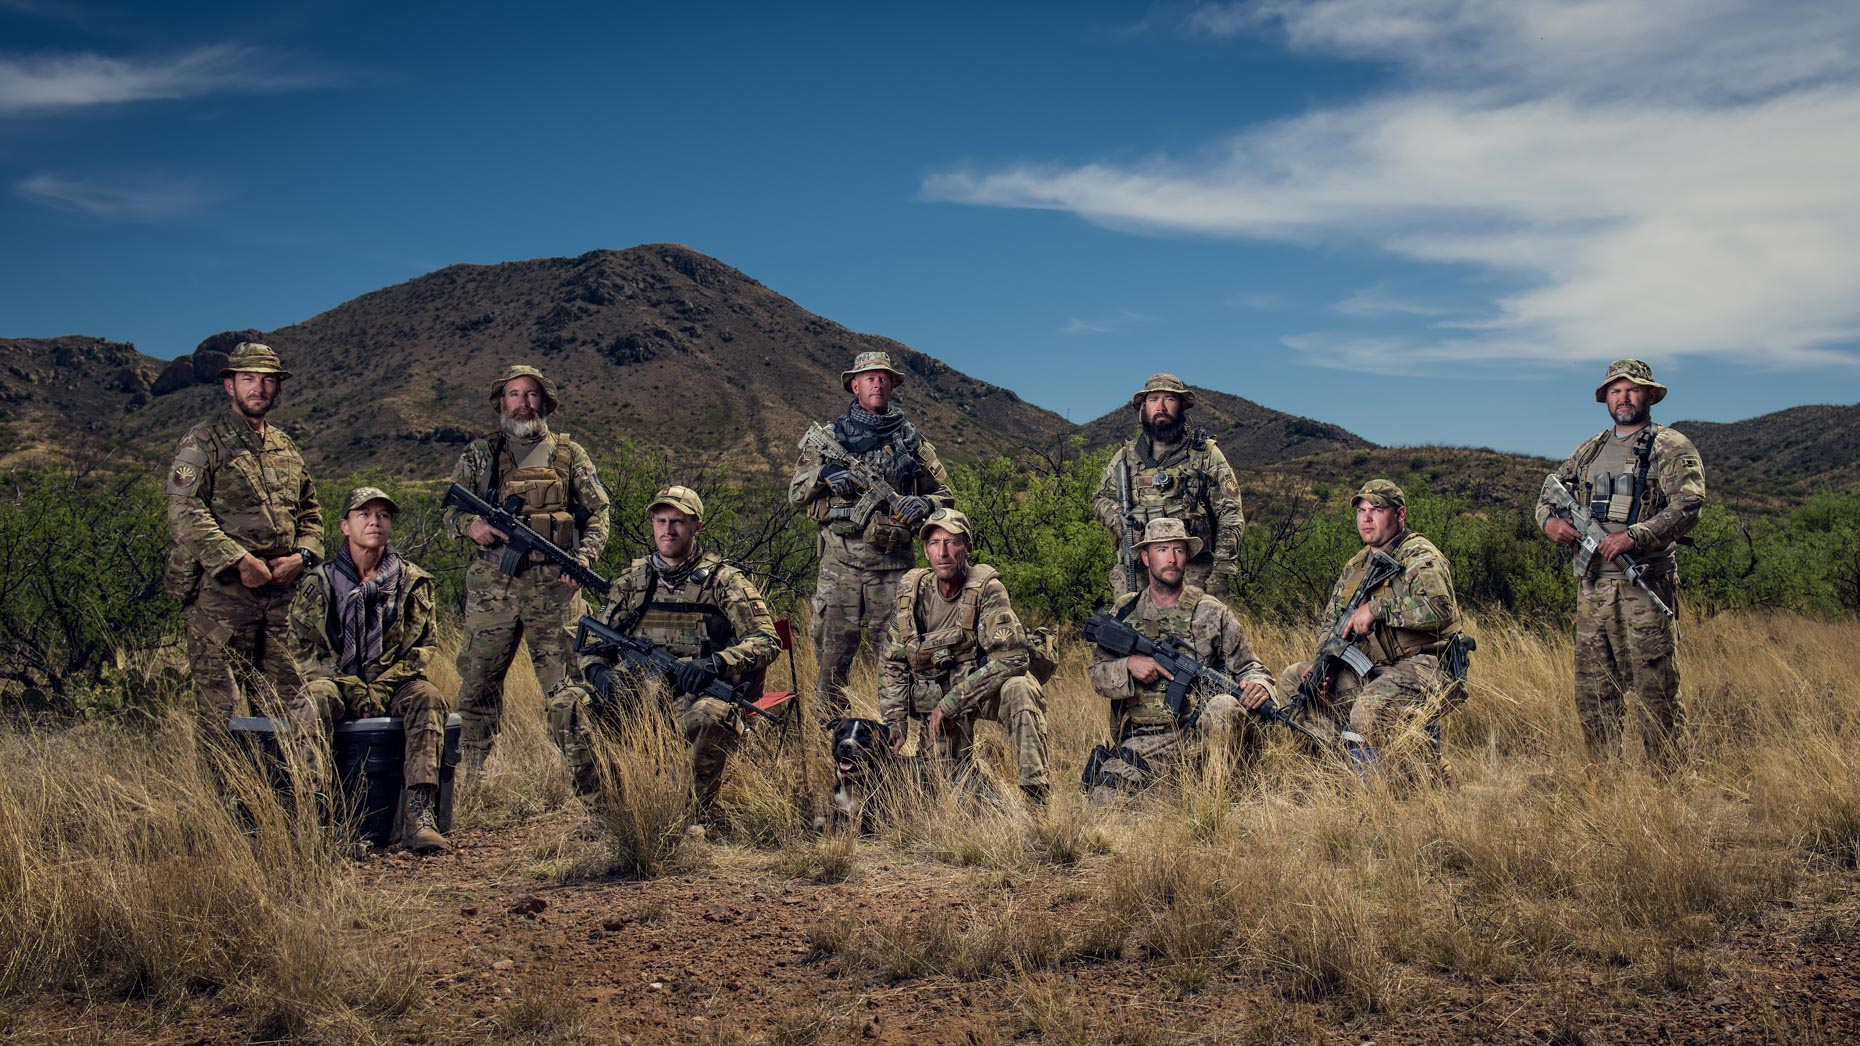 arizona-border-recon-group-portrait